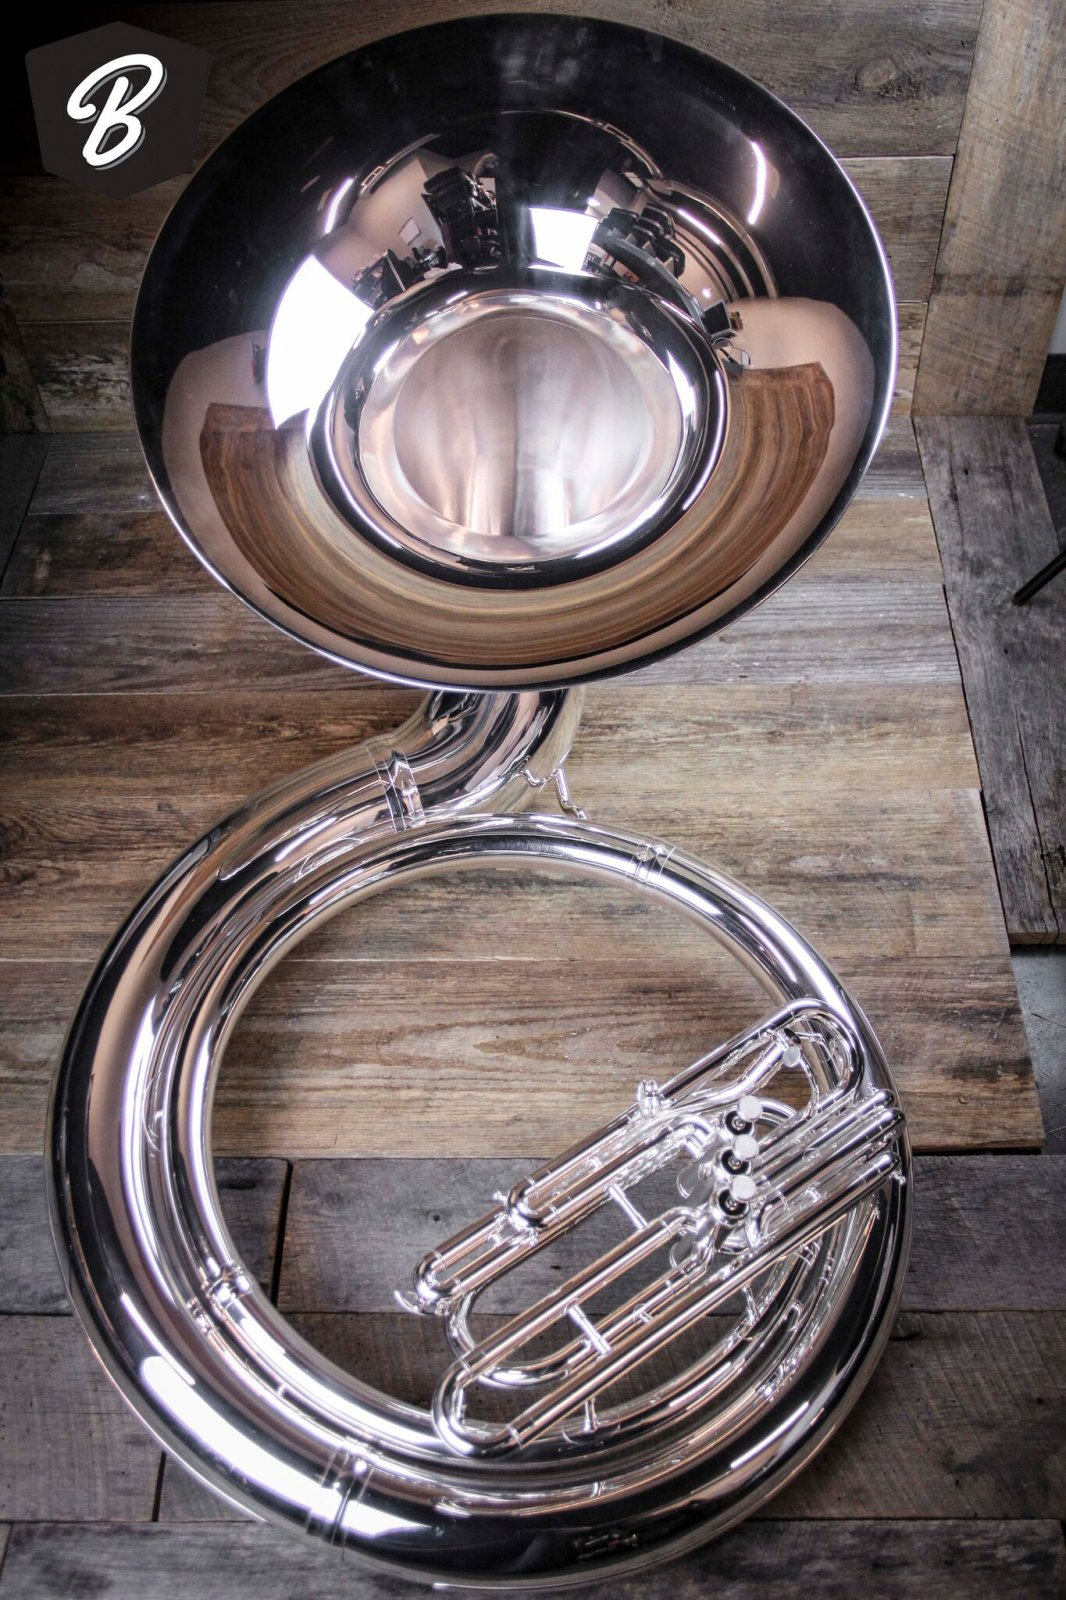 JP2057s Sousaphone in Silver w/ABS Case